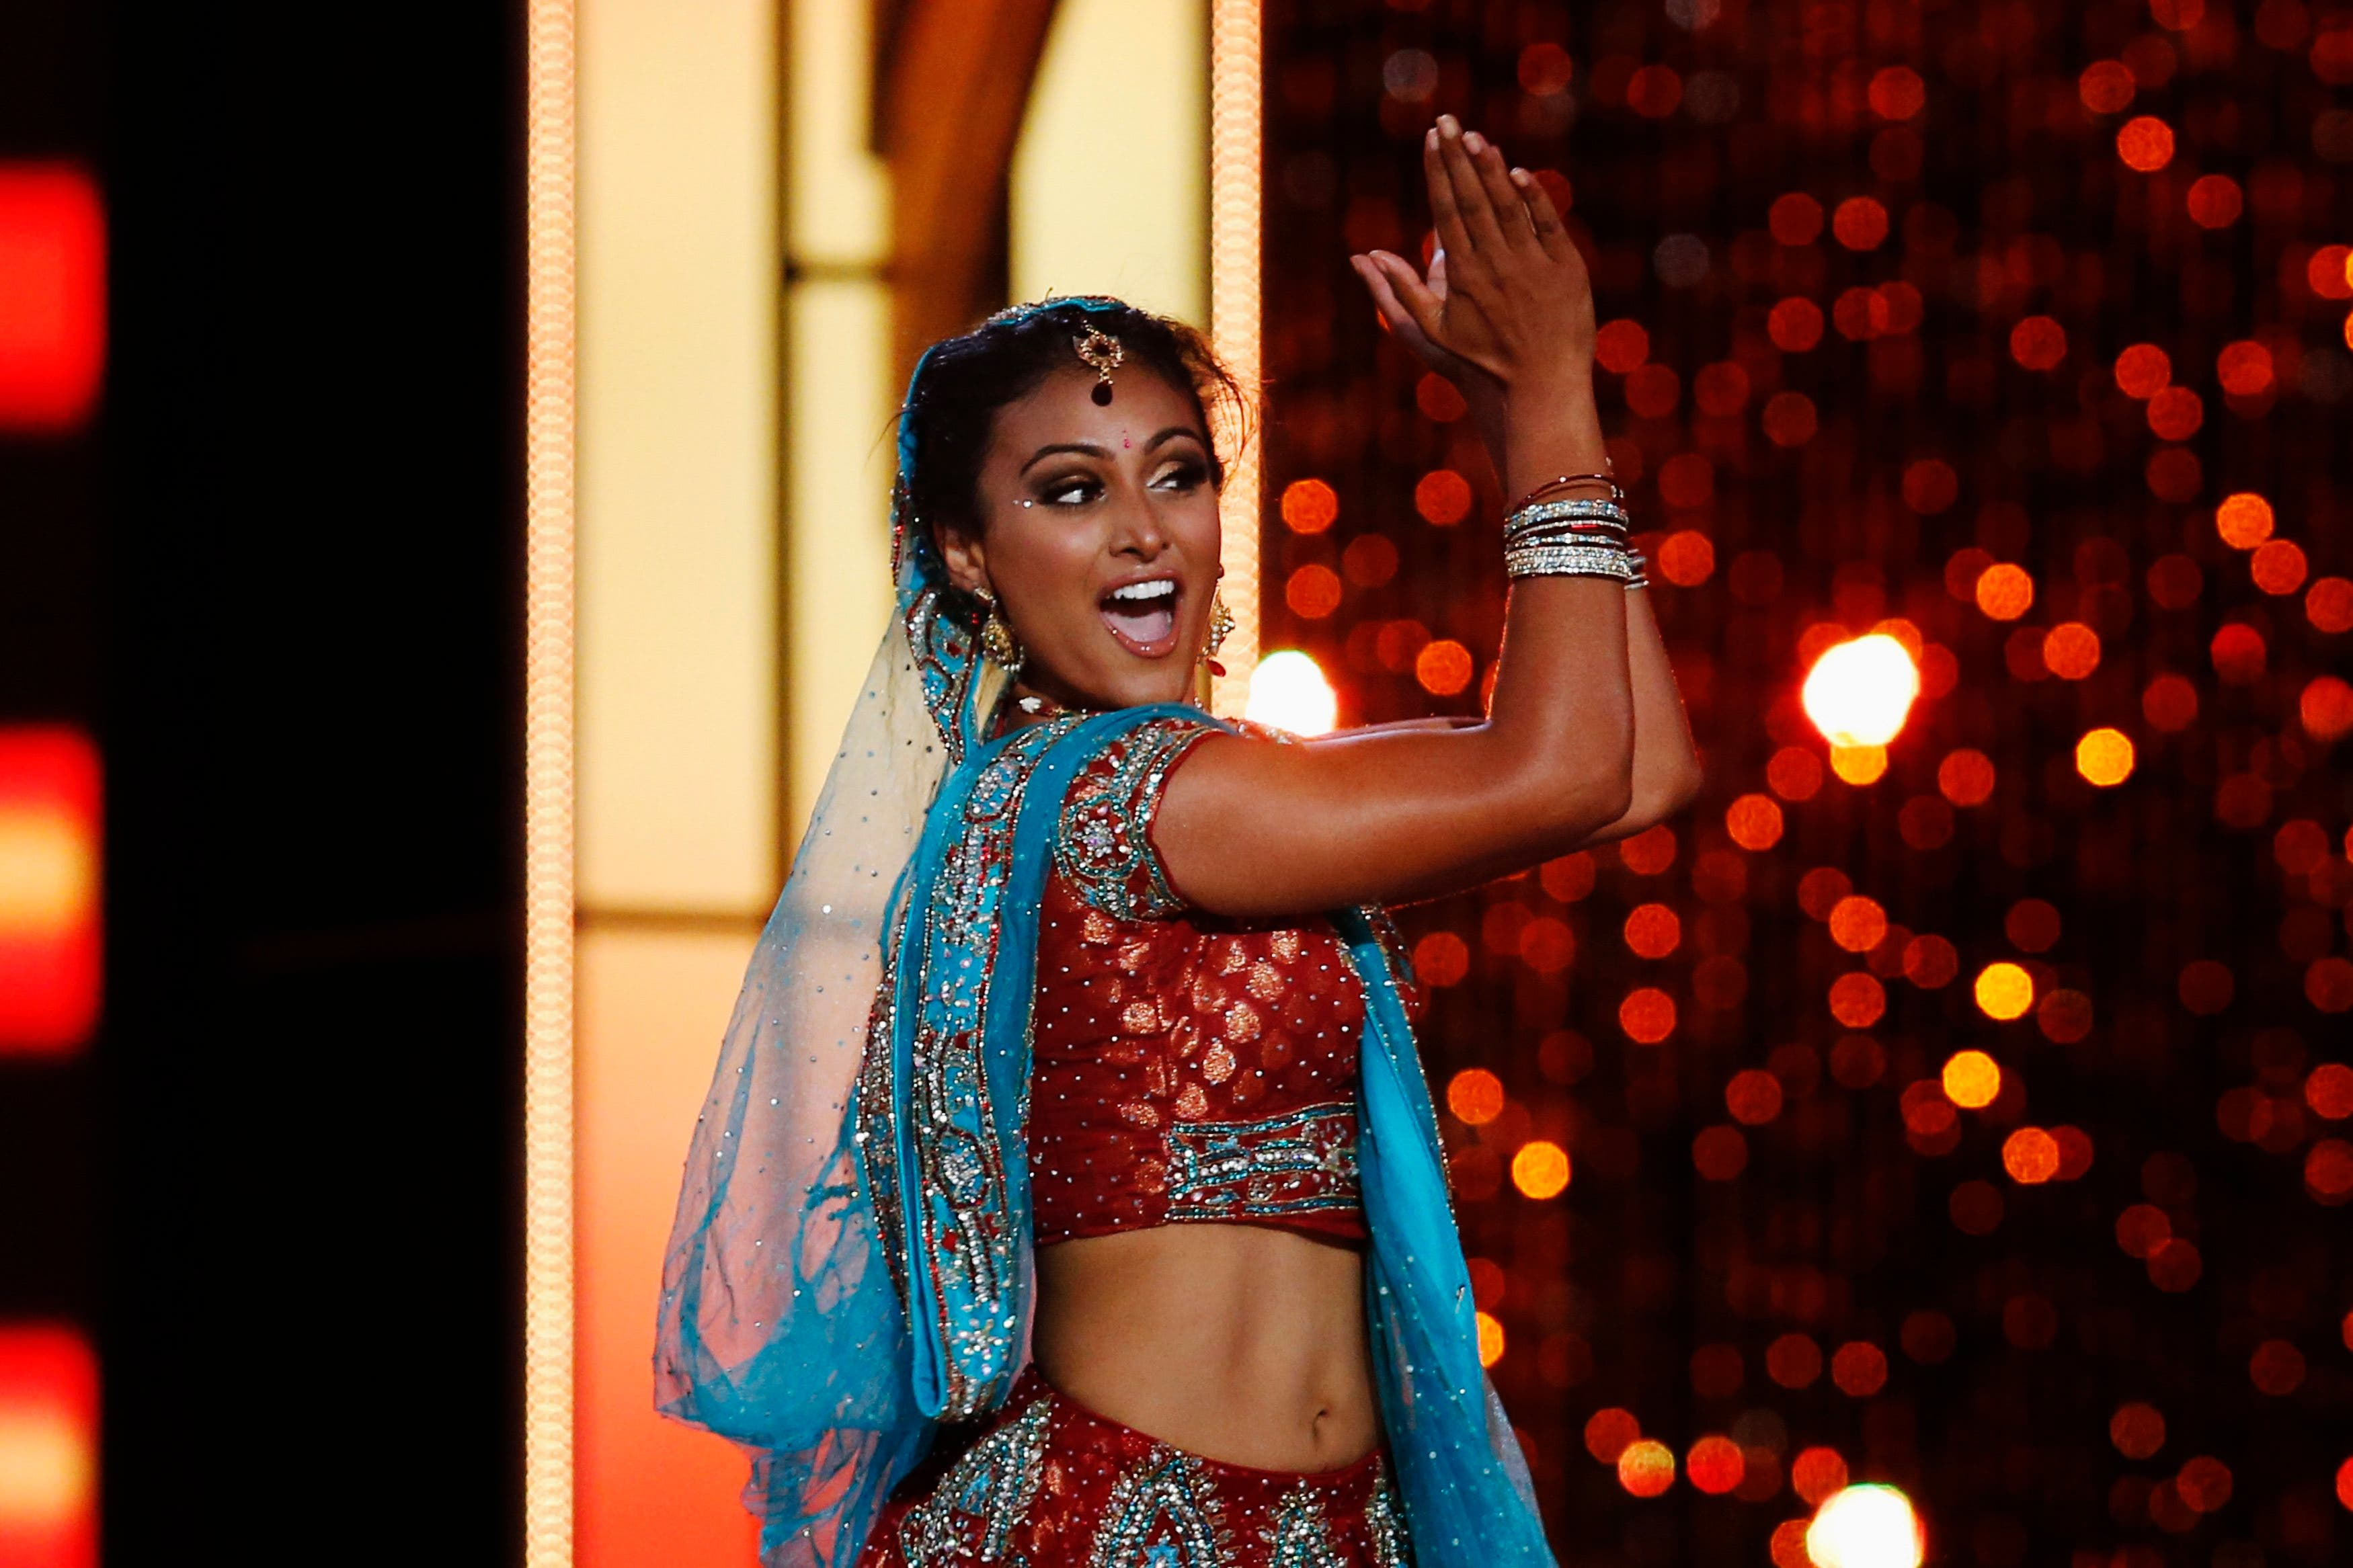 Miss America contestant, Miss New York Nina Davuluri performs a traditional Indian dance during the 2014 Miss America Pageant in Atlantic City, New Jersey, Sept. 15, 2013.  (Reuters)